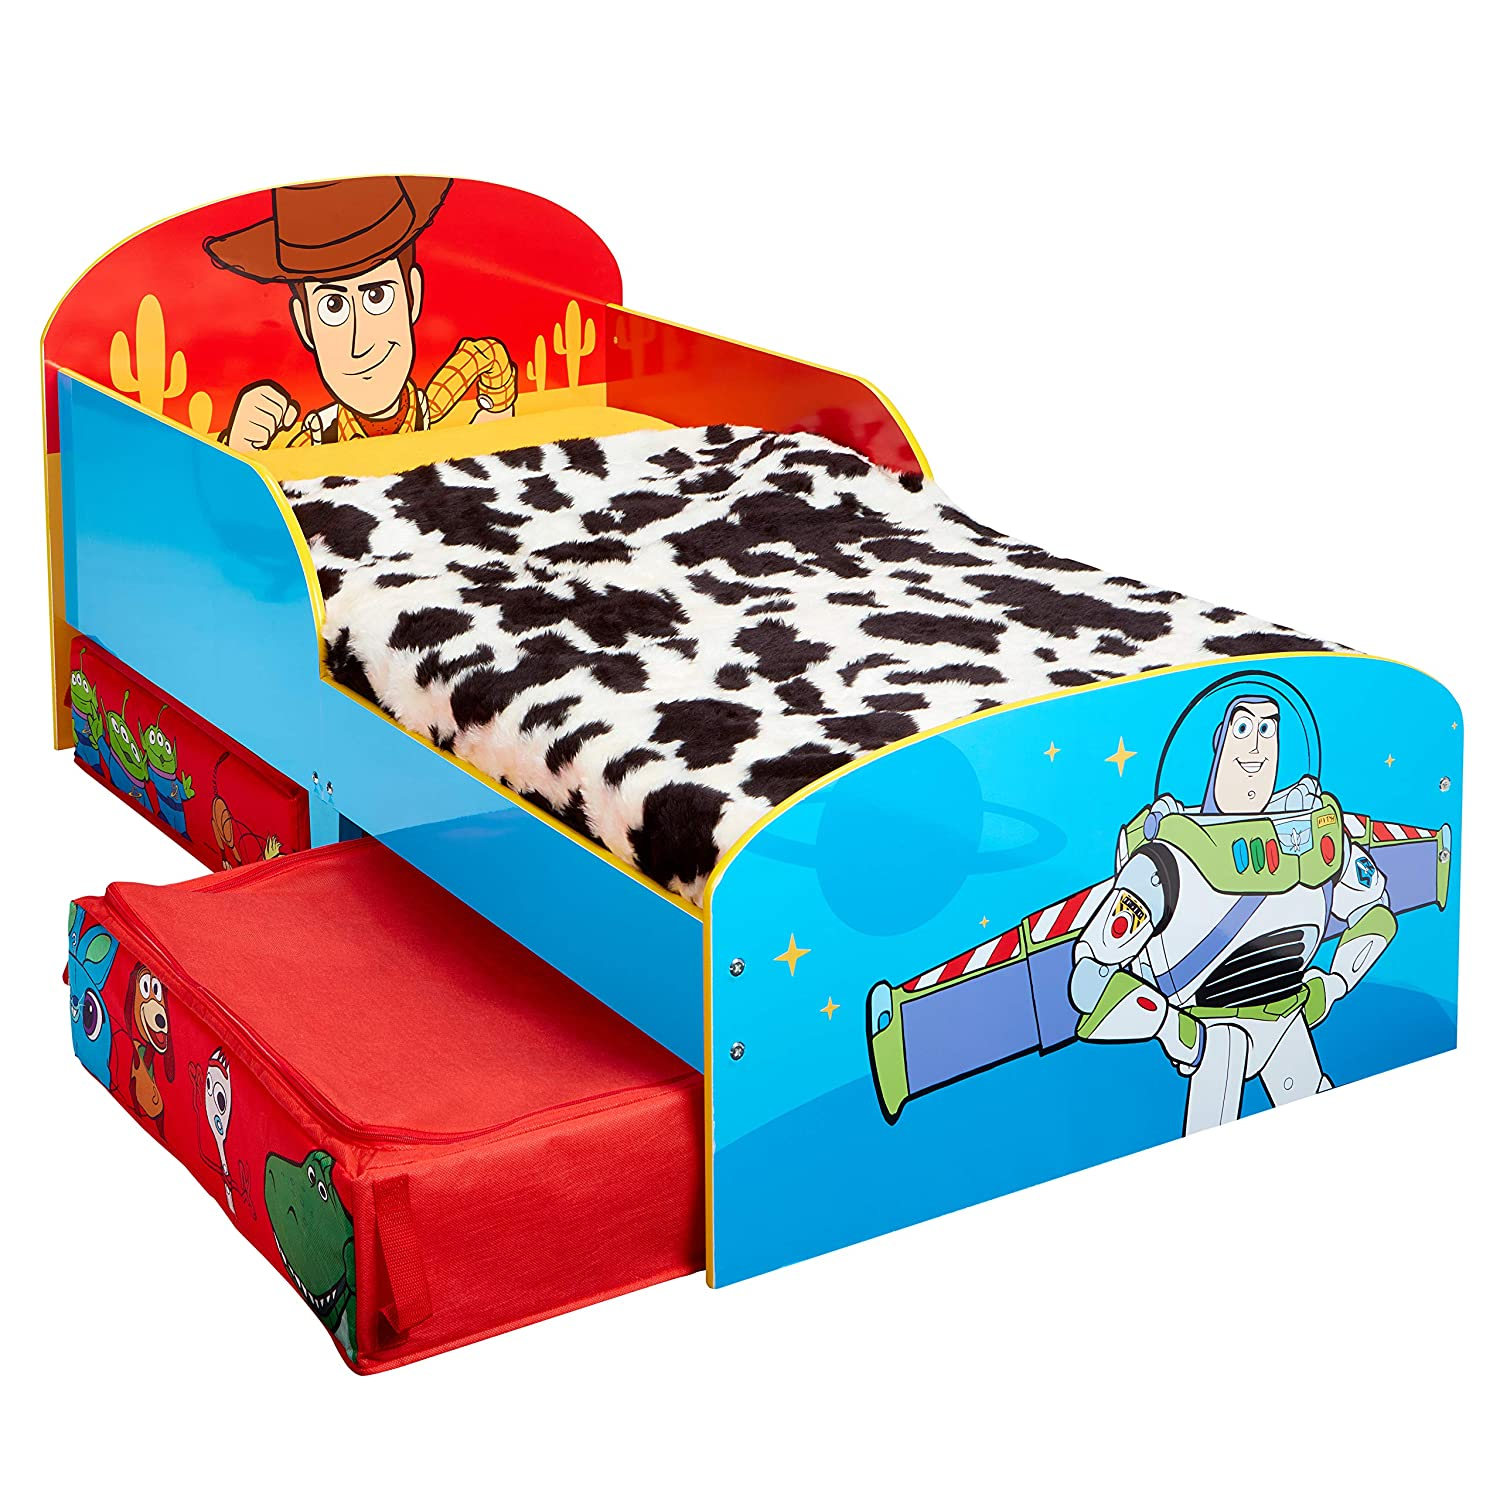 x 77cm L Toy Story 4 Kids Toddler Bed with Storage Drawers by HelloHome 143cm x 63cm W